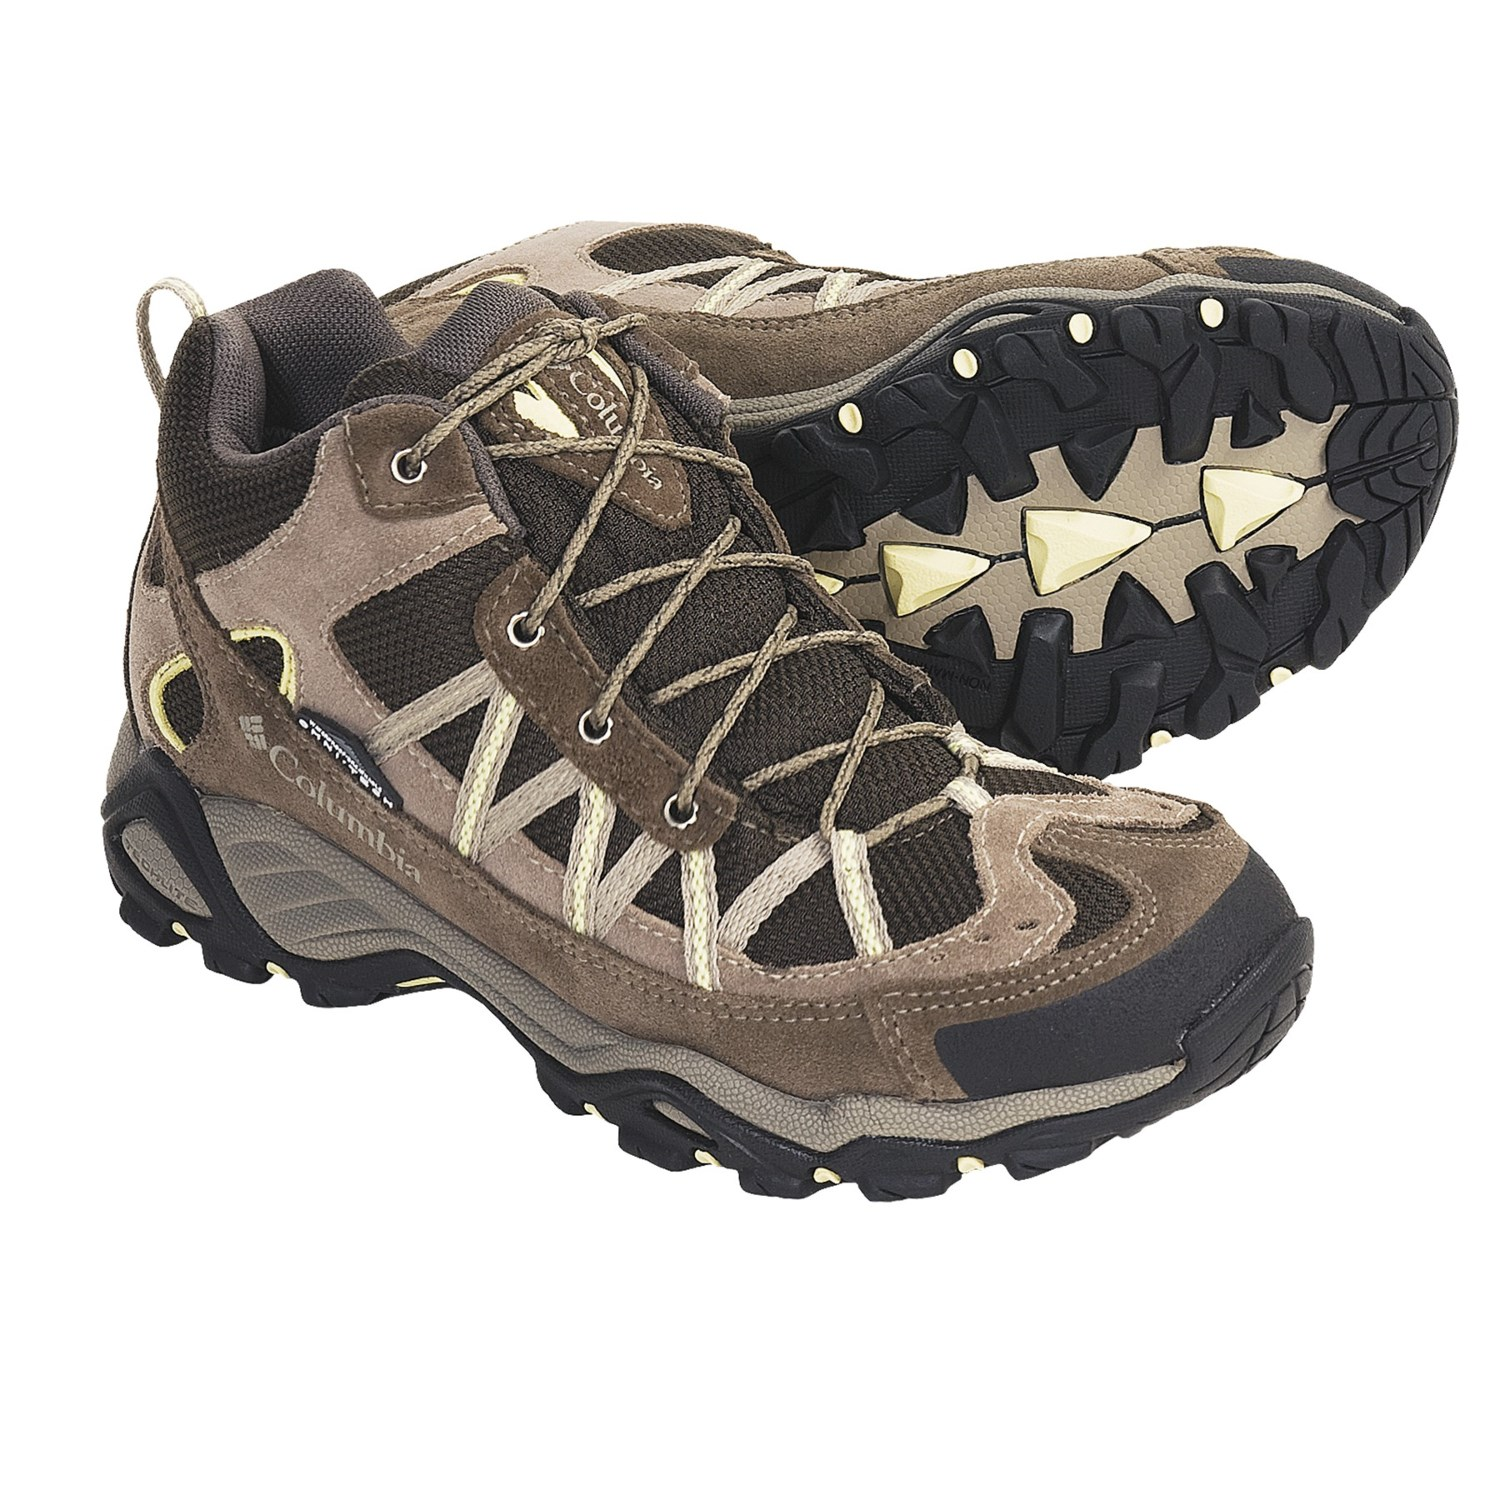 Columbia Sportswear Ashlane Mid Hiking Boots (For Women) in Mud